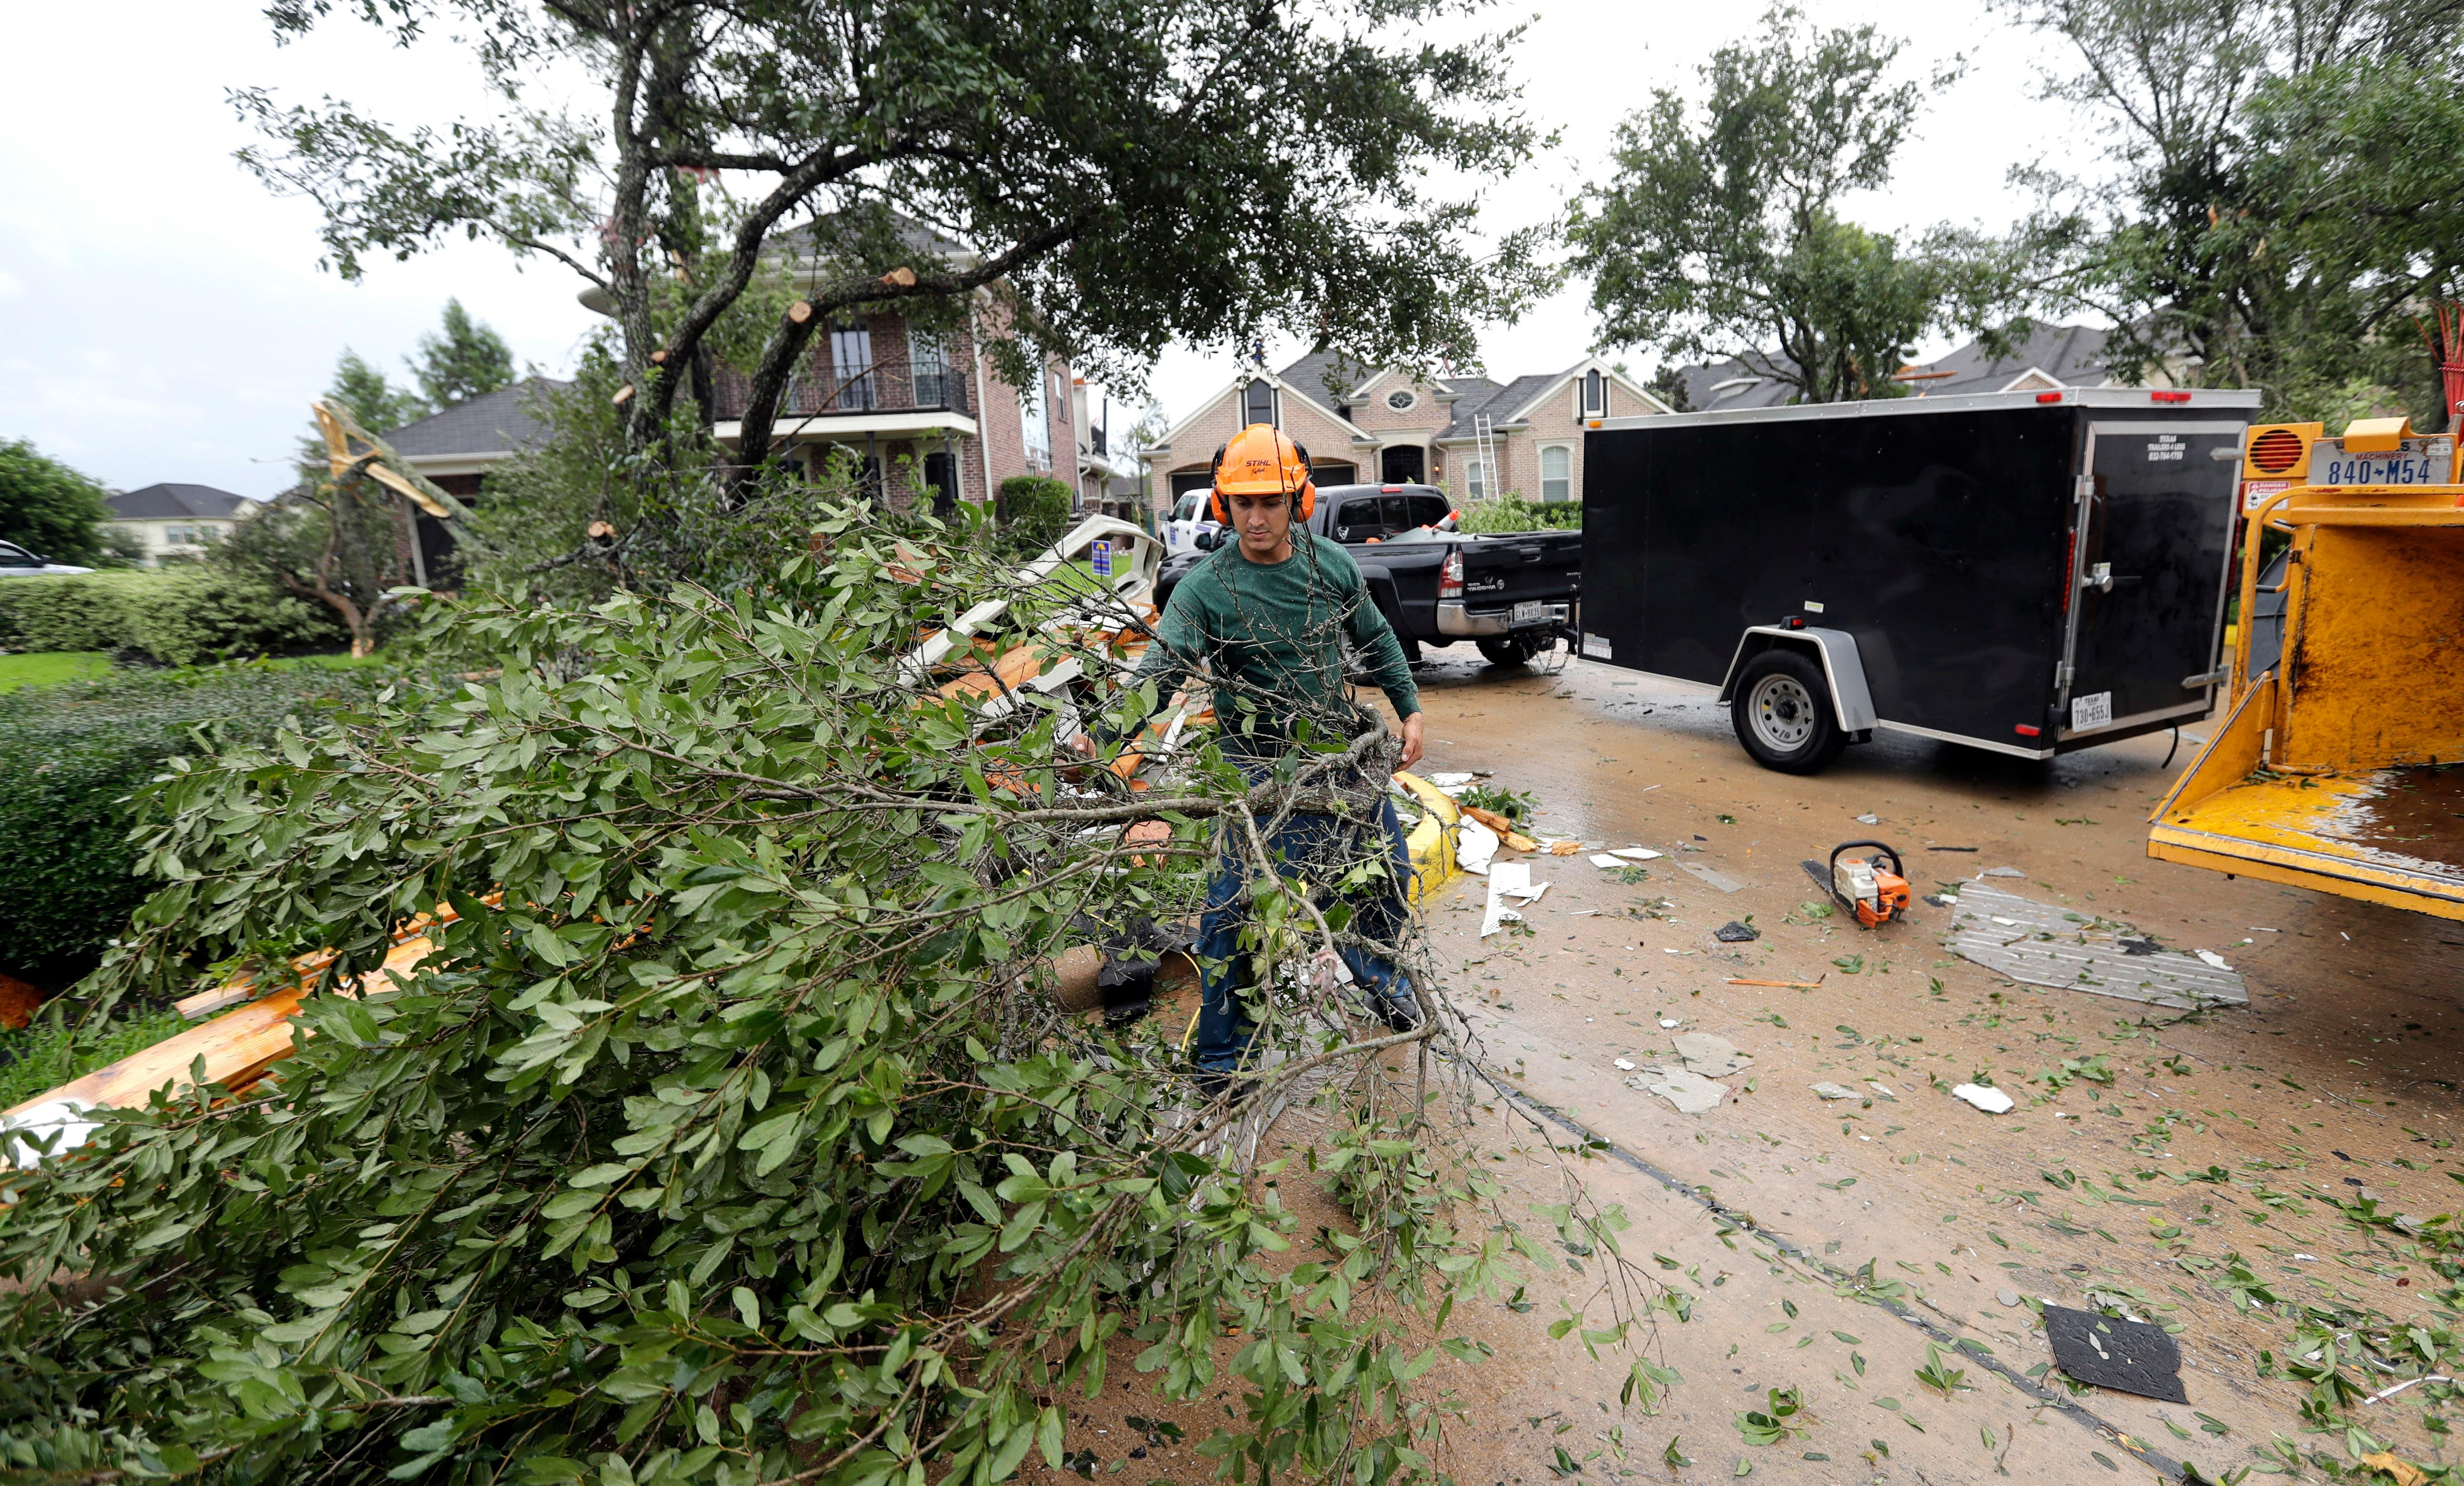 Henry Isaac removes broken tree limbs after Hurricane Harvey Saturday, Aug. 26, 2017, in Missouri City, Texas.  Harvey rolled over the Texas Gulf Coast on Saturday, smashing homes and businesses and lashing the shore with wind and rain so intense that drivers were forced off the road because they could not see in front of them.  (AP Photo/David J. Phillip)